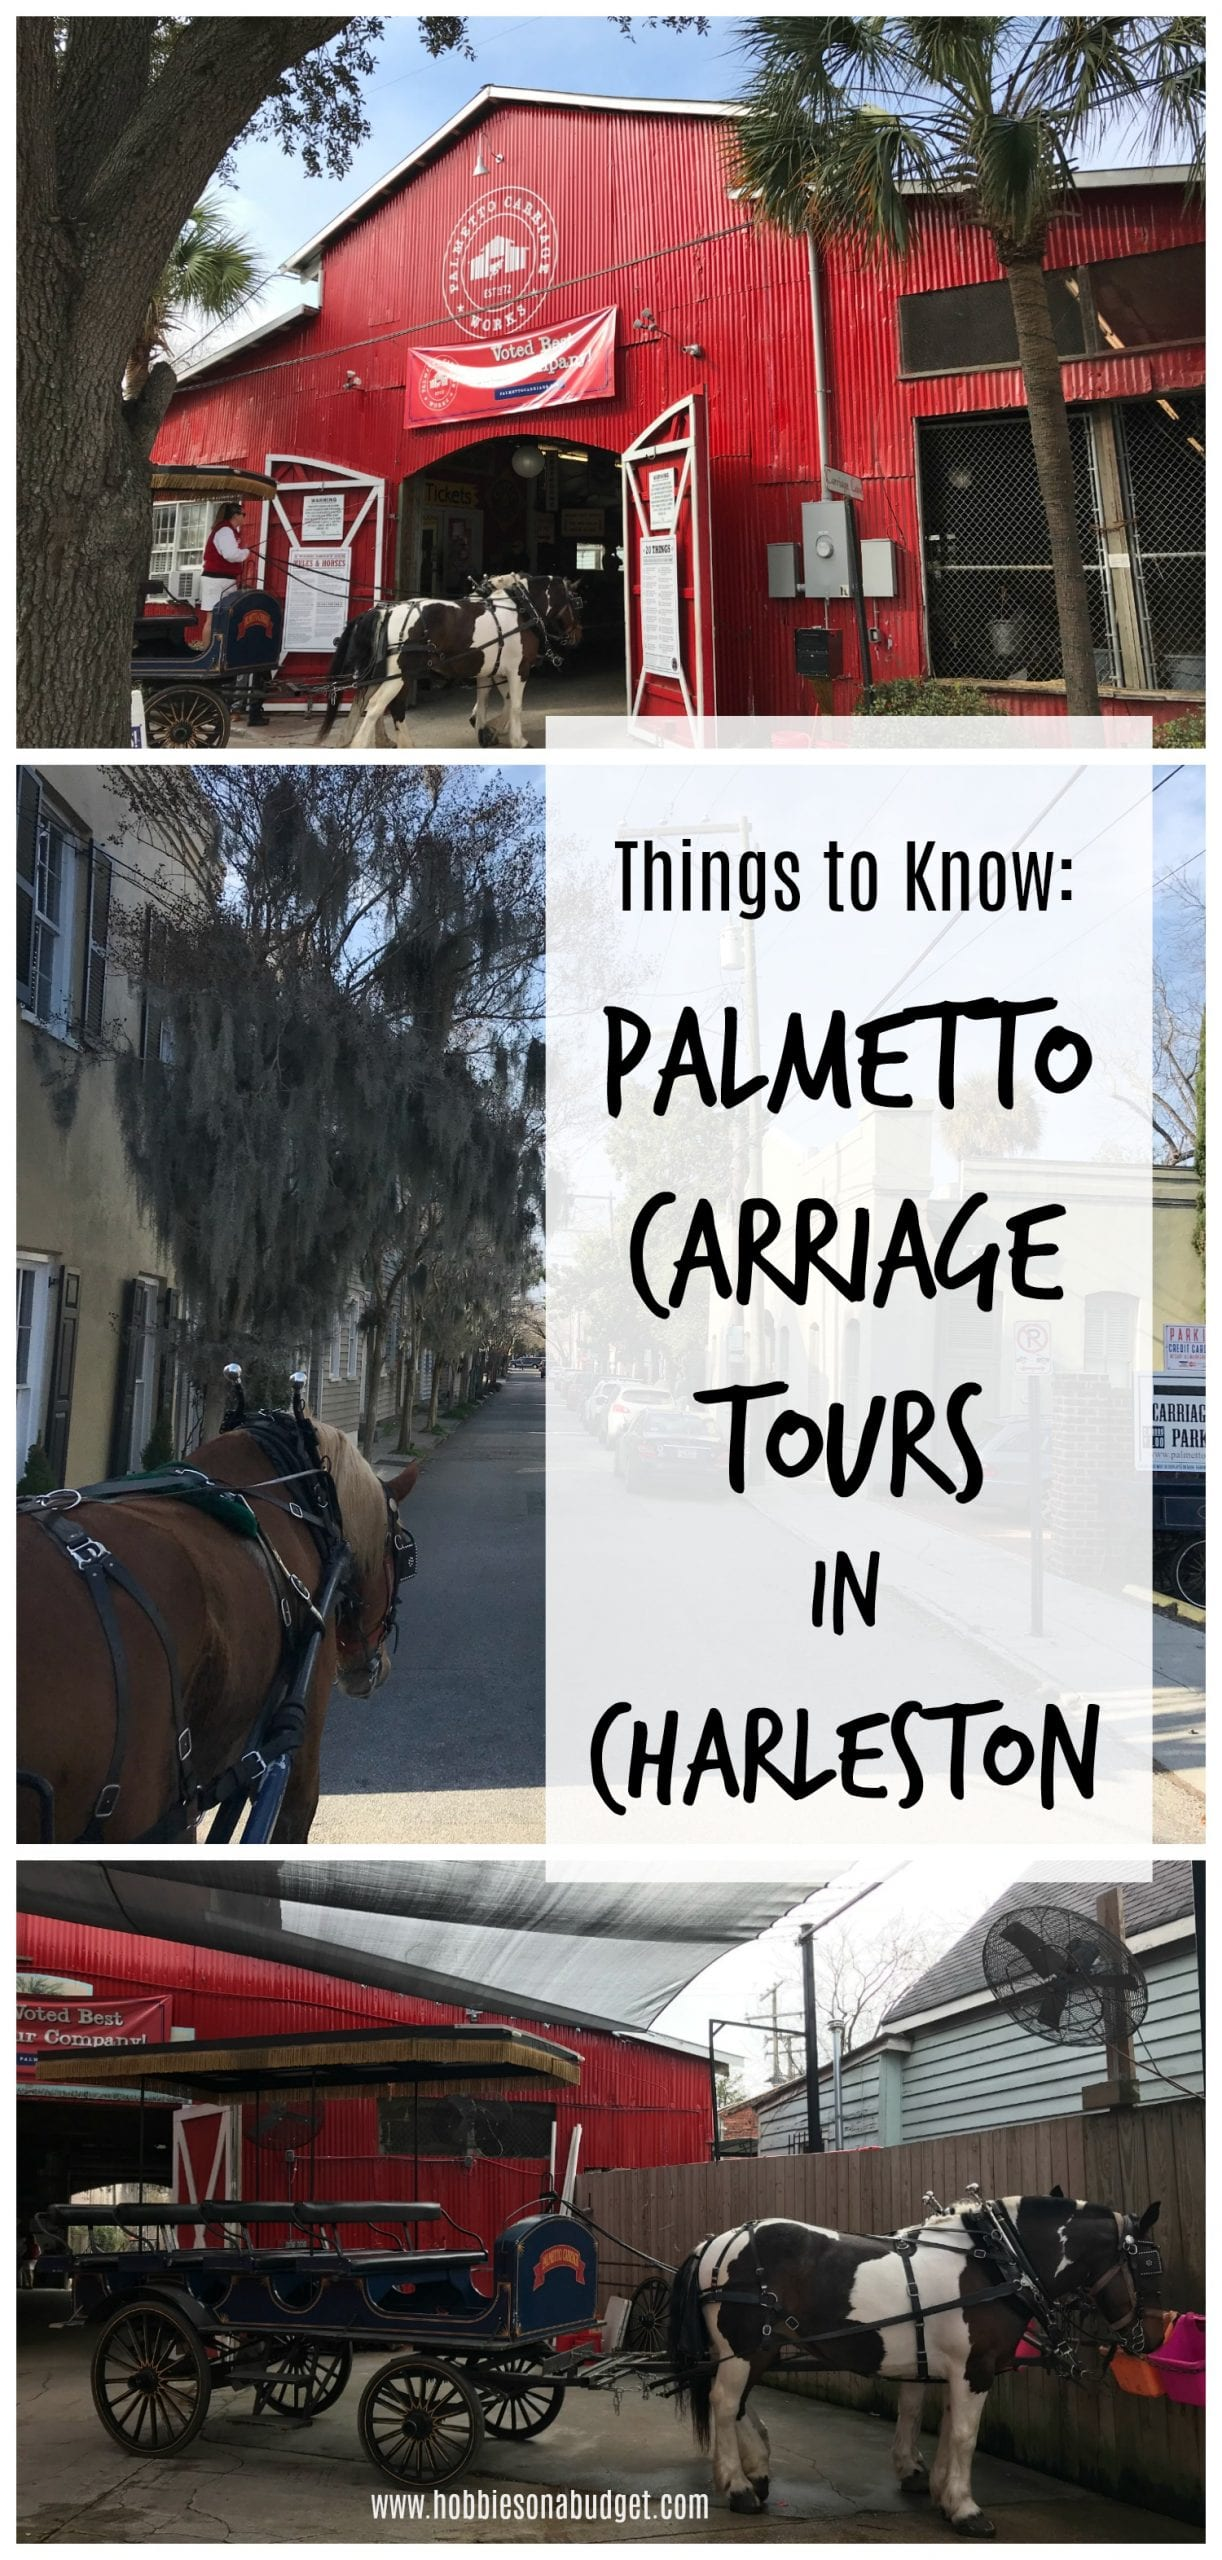 Things to Know Carriage Tours in Charleston